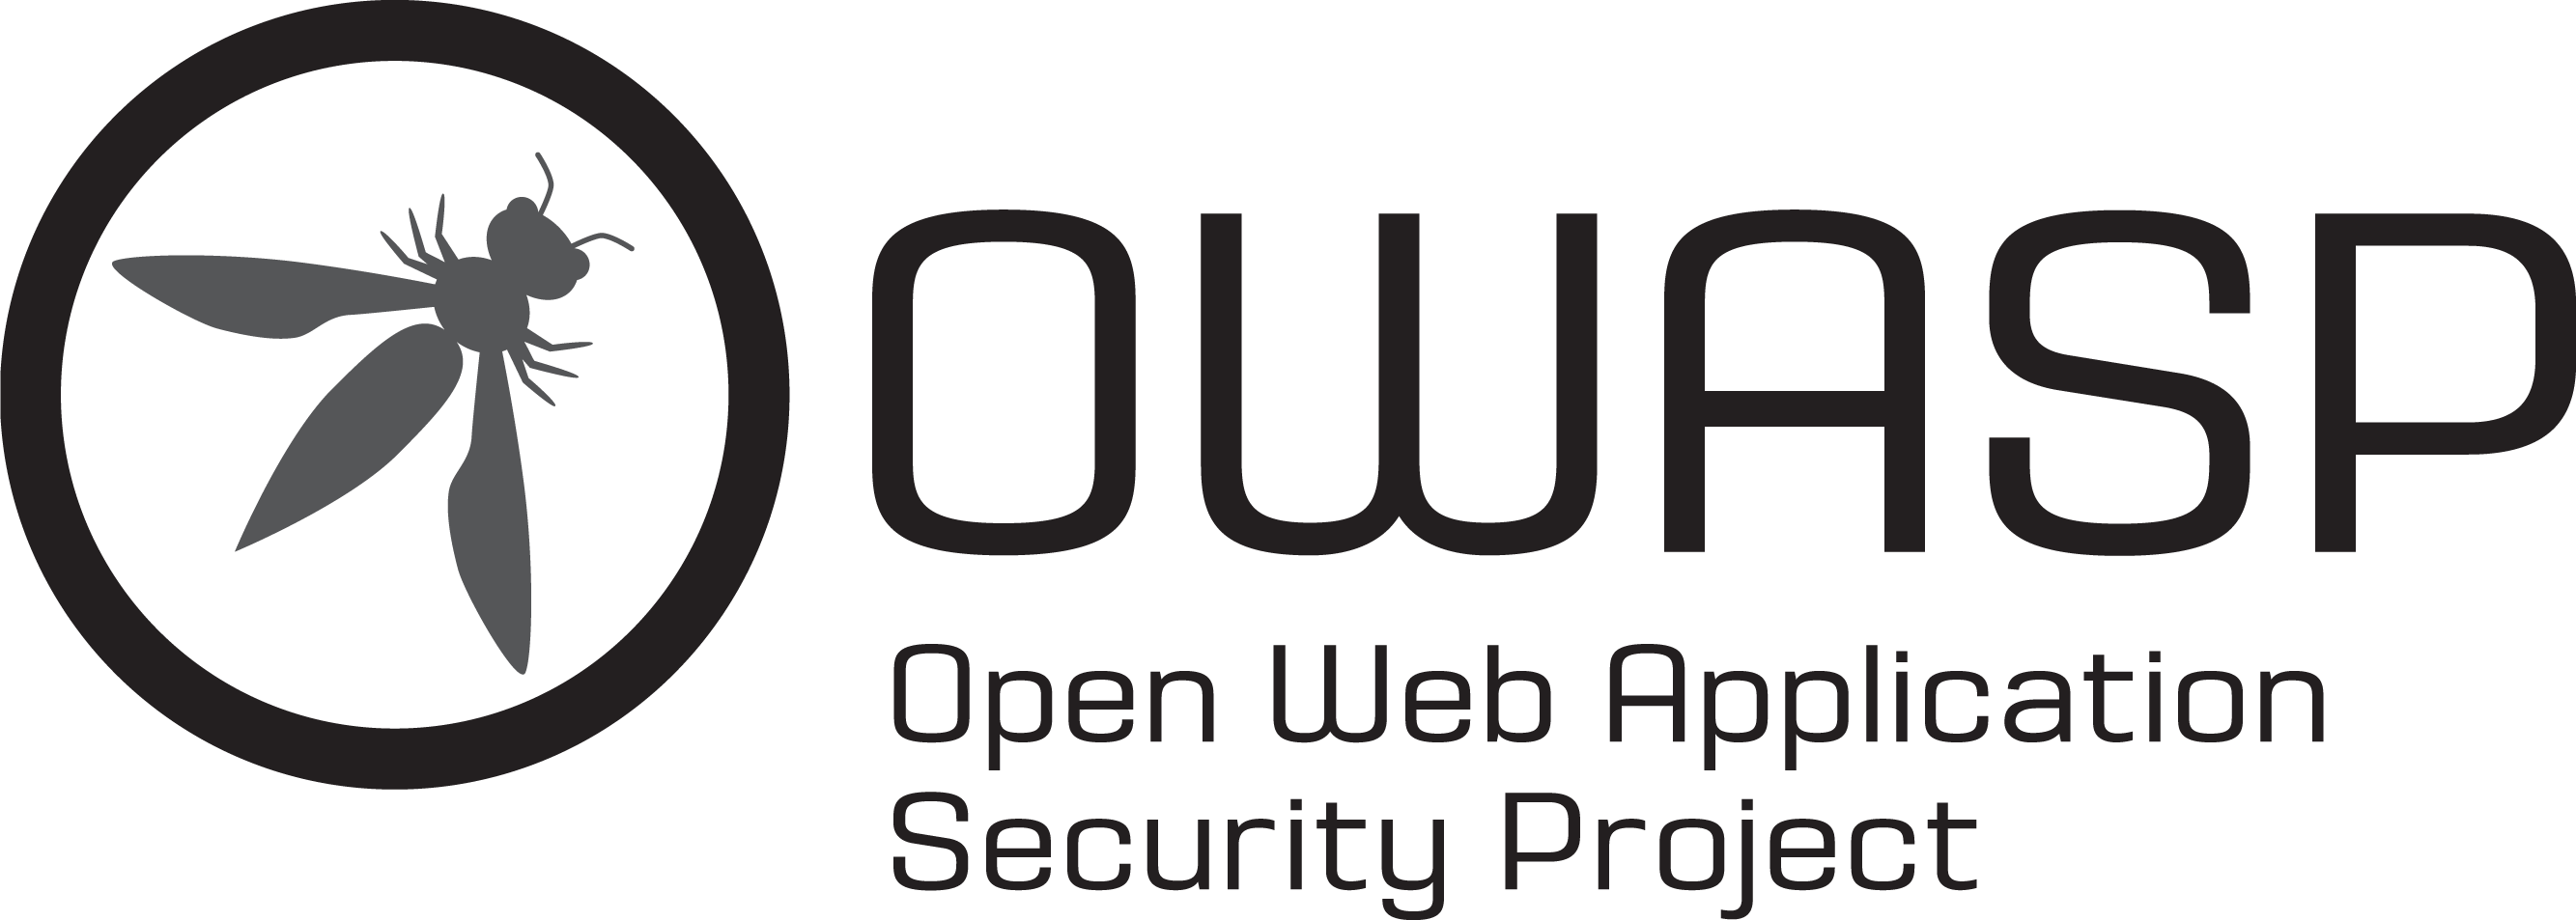 Supporting the new 2017 Update to the OWASP Top 10